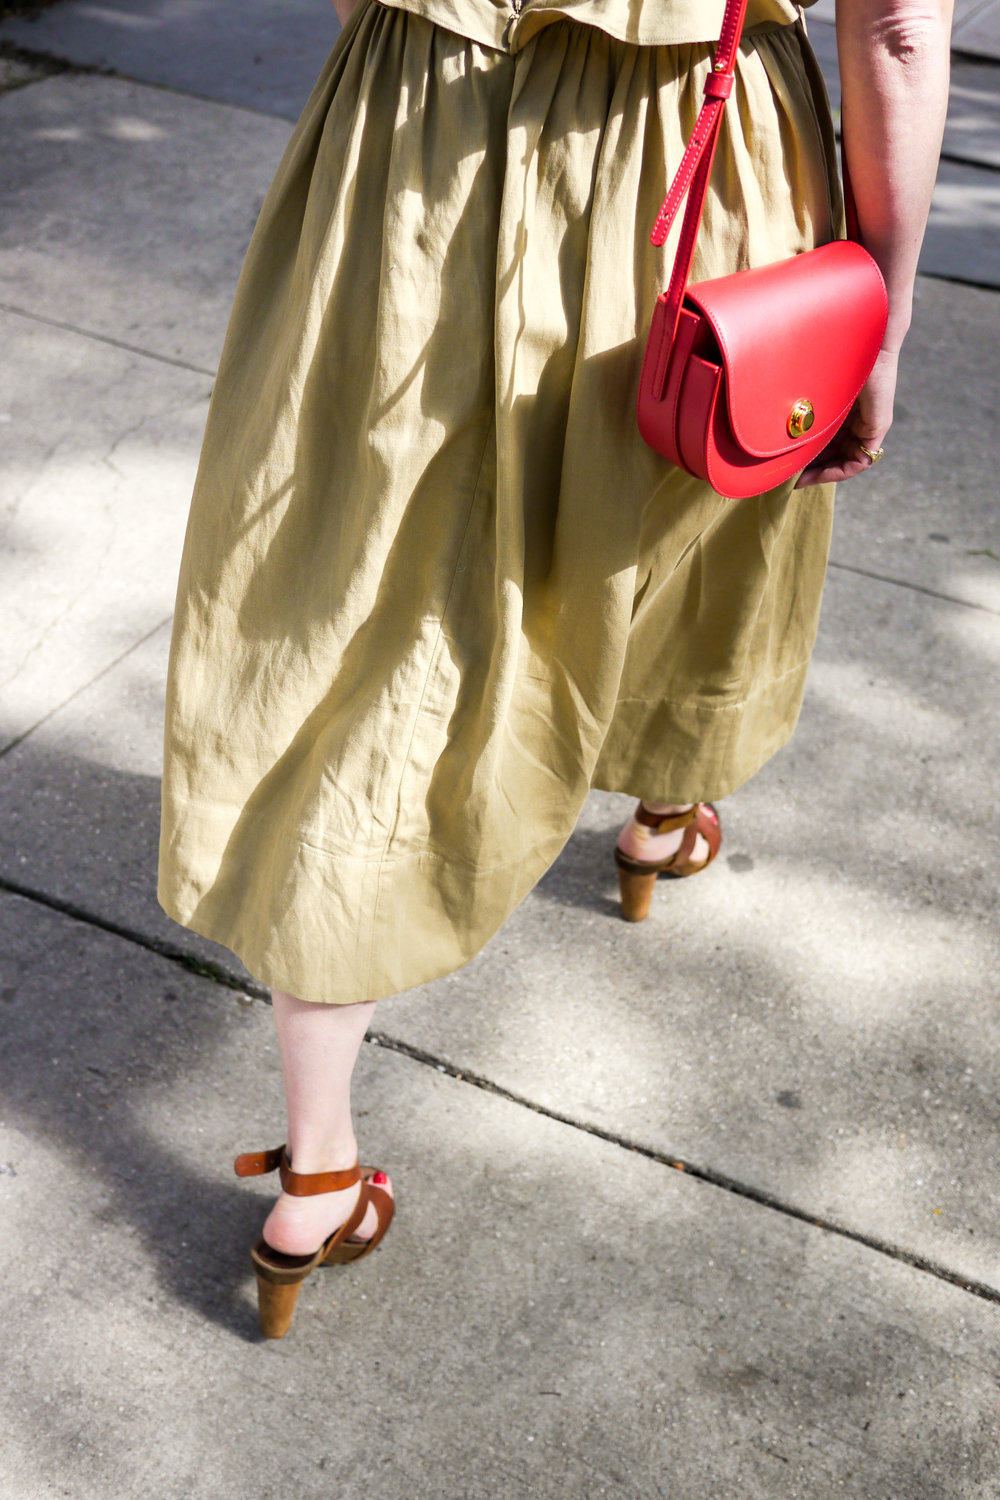 Streetstyle Details: Dress, Ulla Johnson; Shoes, Handmade; Bag, Mansur Gavriel; Earrings, Kathleen Whitaker